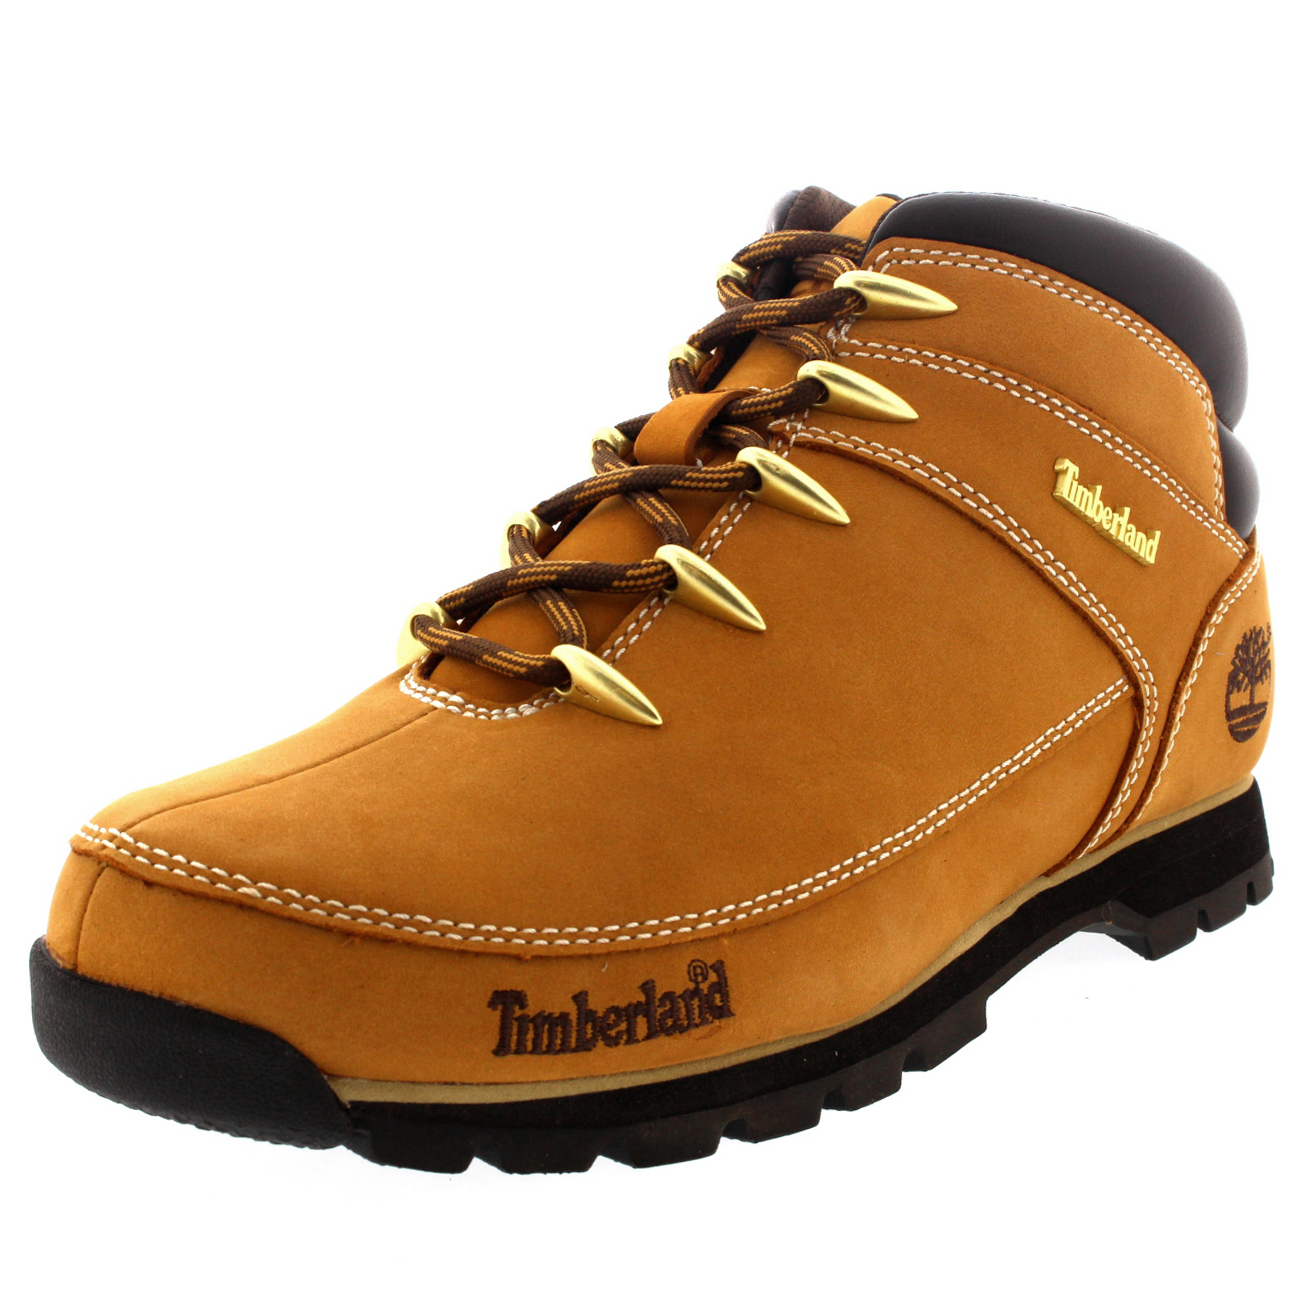 Men's Timberland Euro Sprint Hiker Boots discount cost low shipping fee sale online drIMtfB